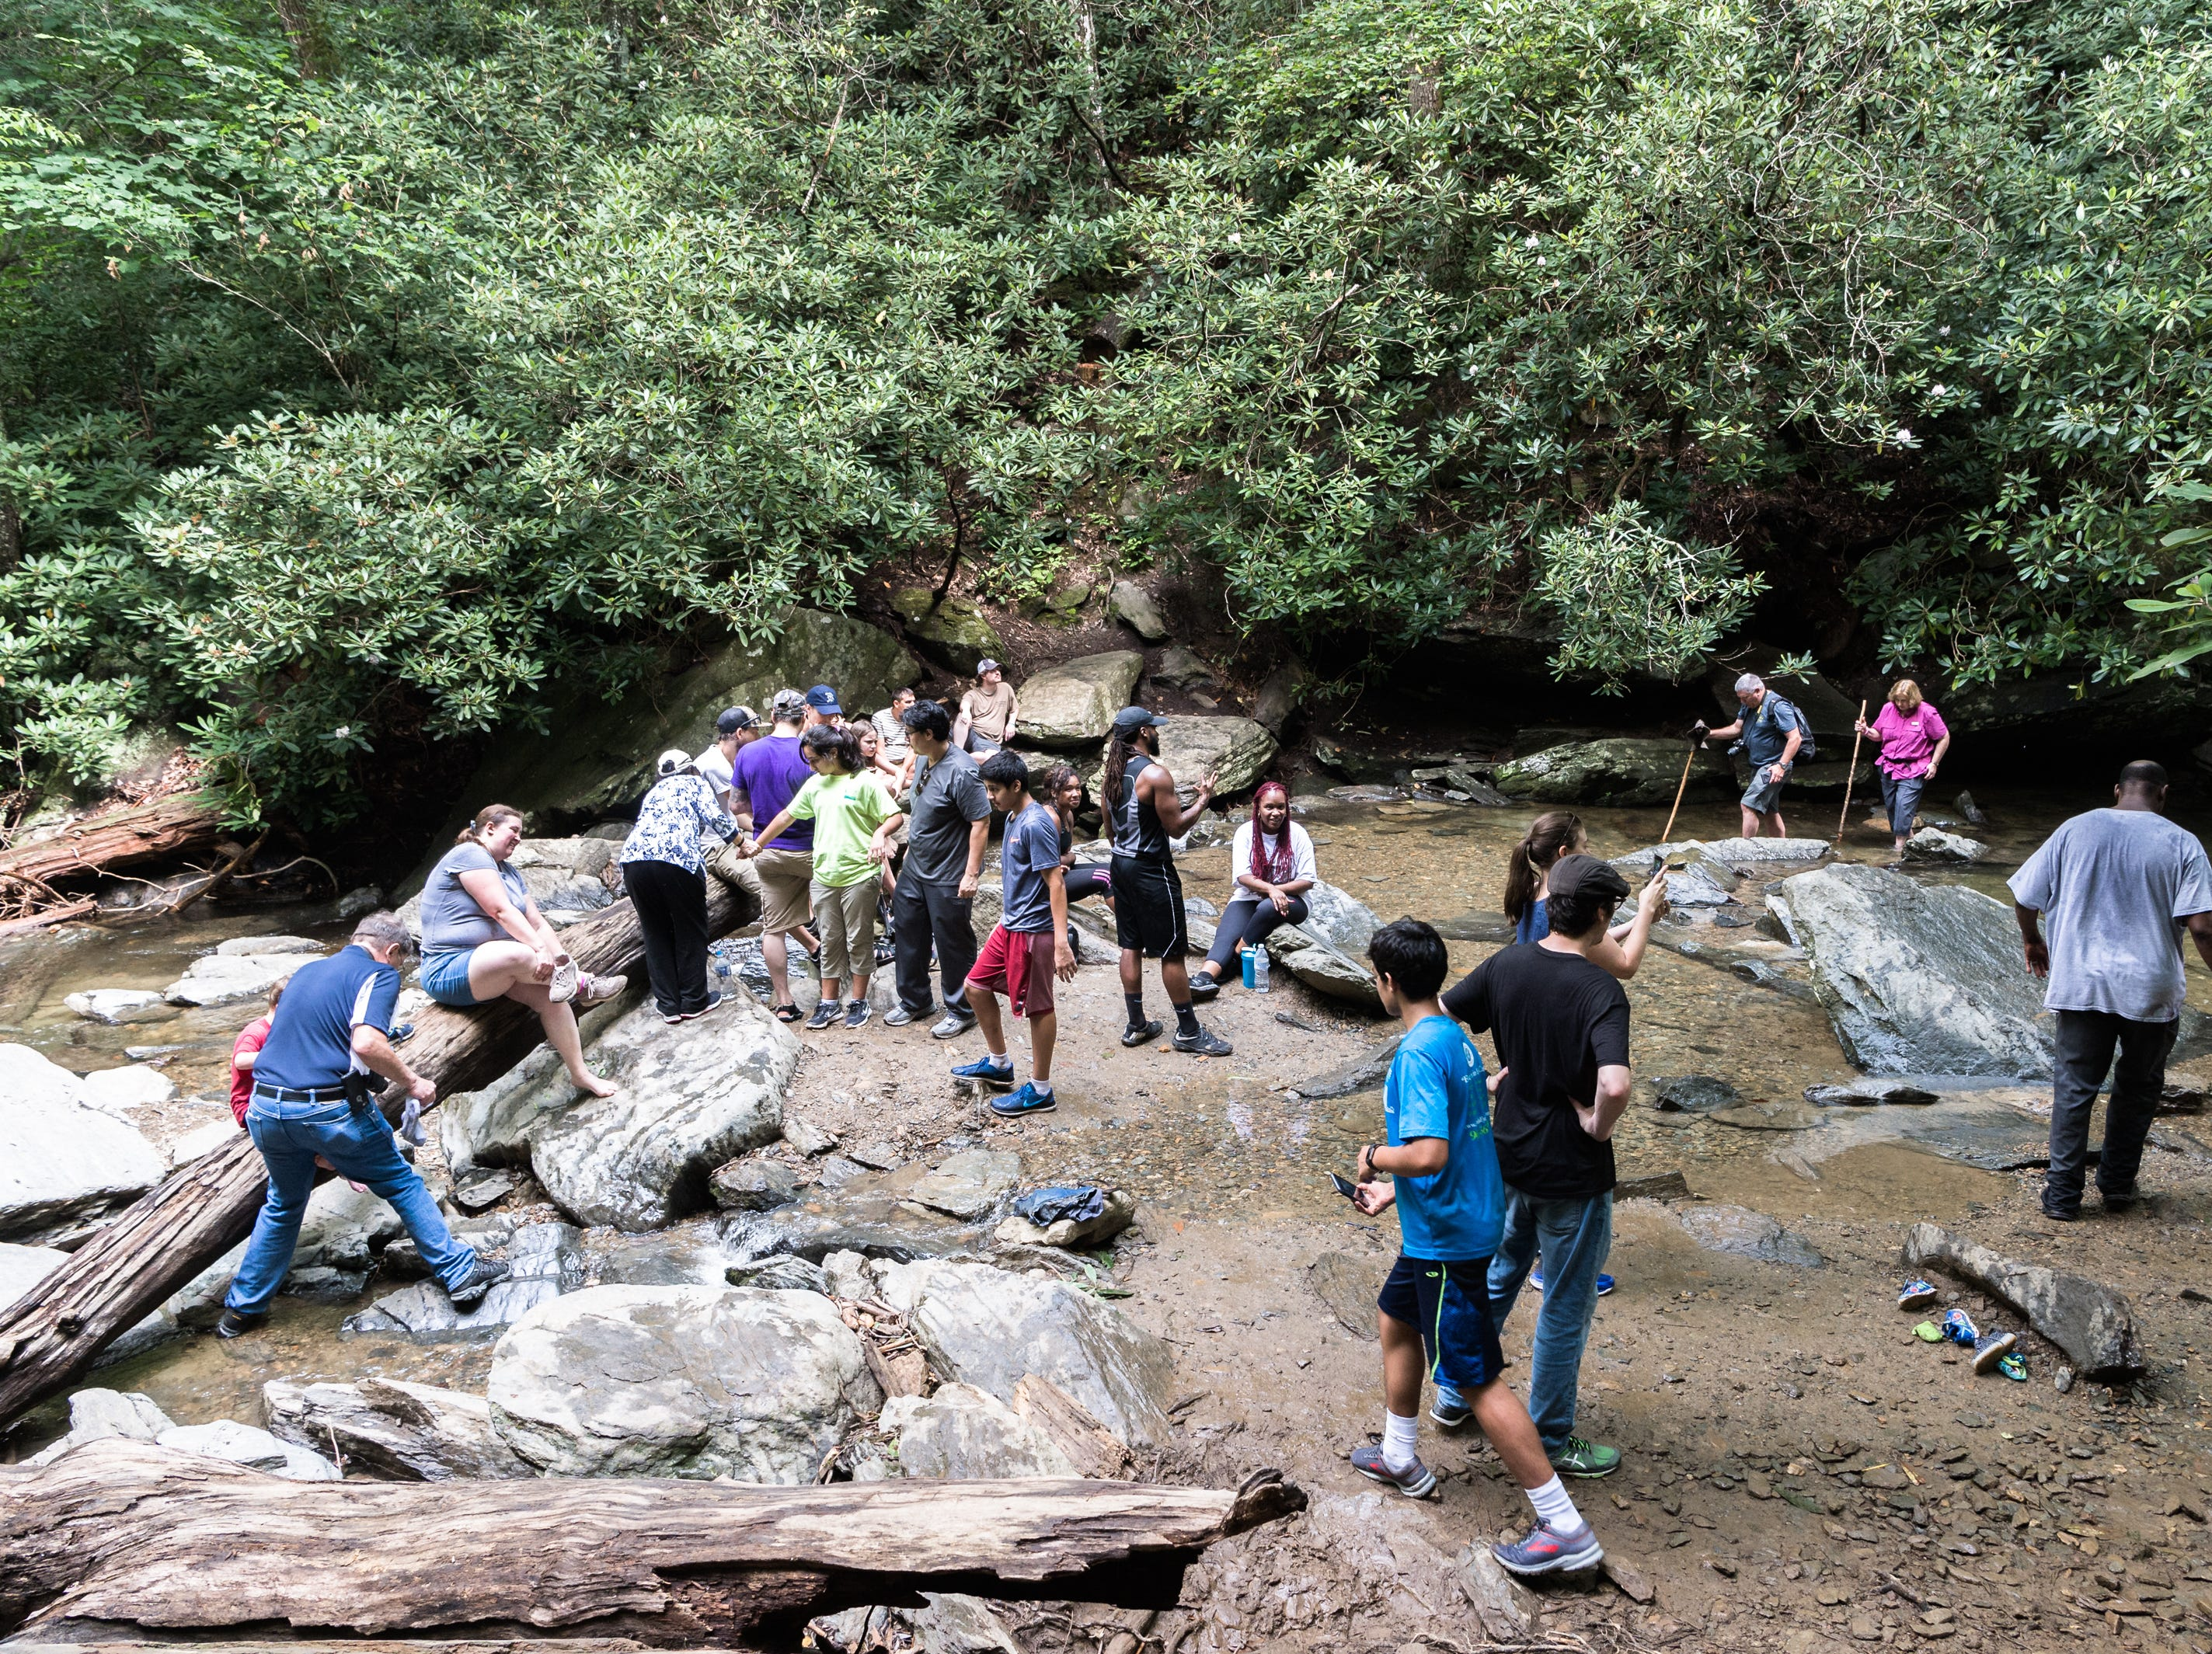 Visitors to Catabwa Falls in the Pisgah National Forest in Old Fort wade in the pool at the base of the falls Friday, July 13, 2018.